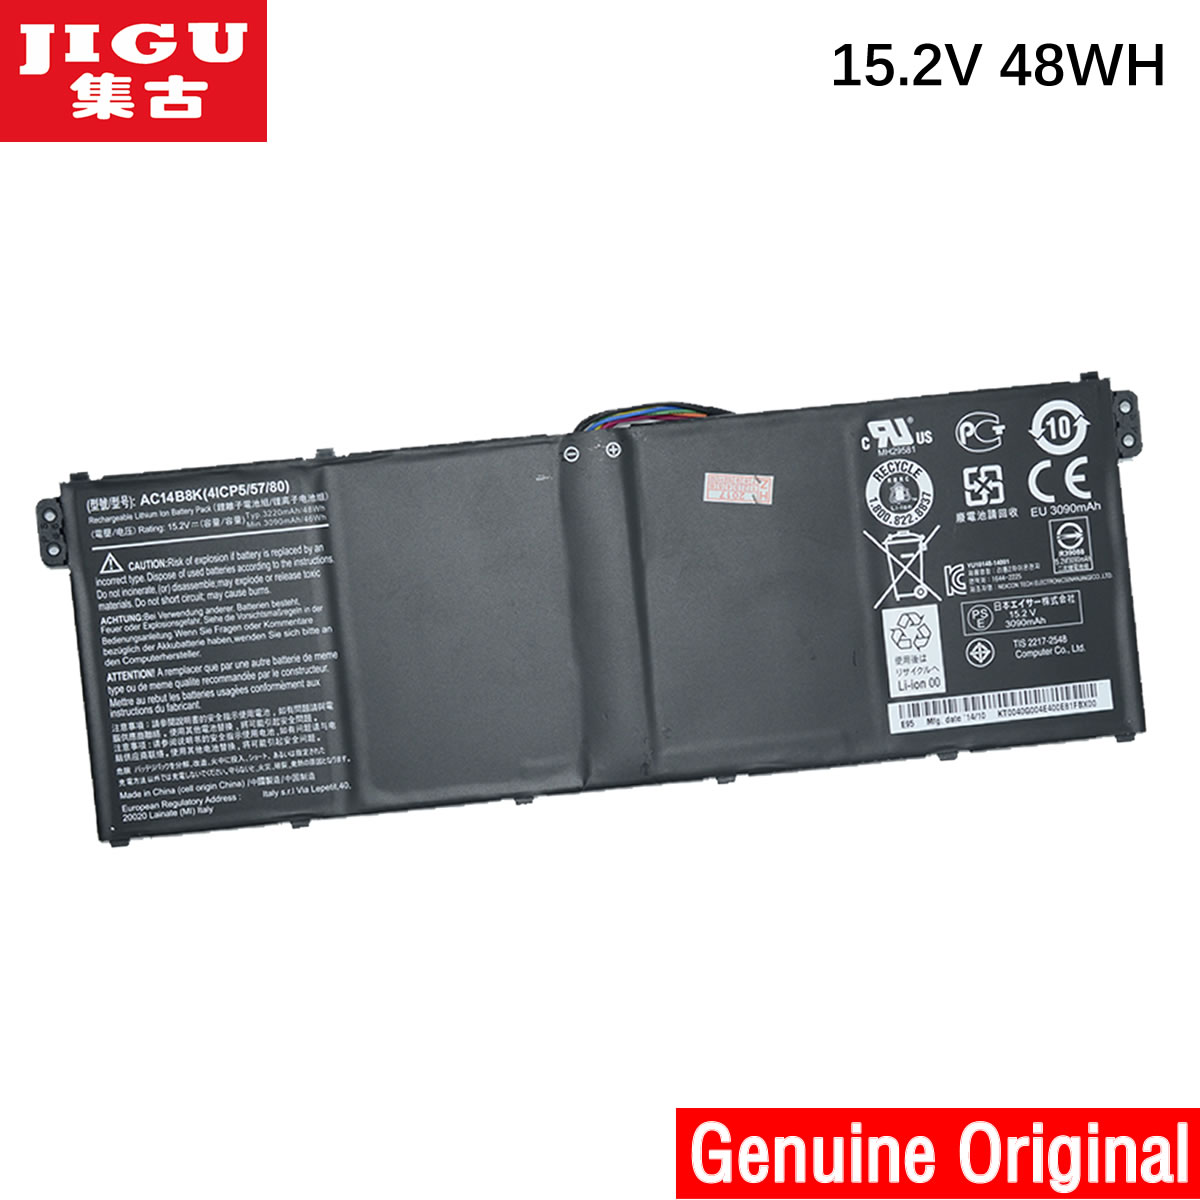 JIGU Original Laptop Battery AC14B8K FOR Acer E3-111 E3-112 CB3-111 CB5-311 ES1-511 ES1-512 E5-771G V3-111 V3-371 ES1-711 48WH